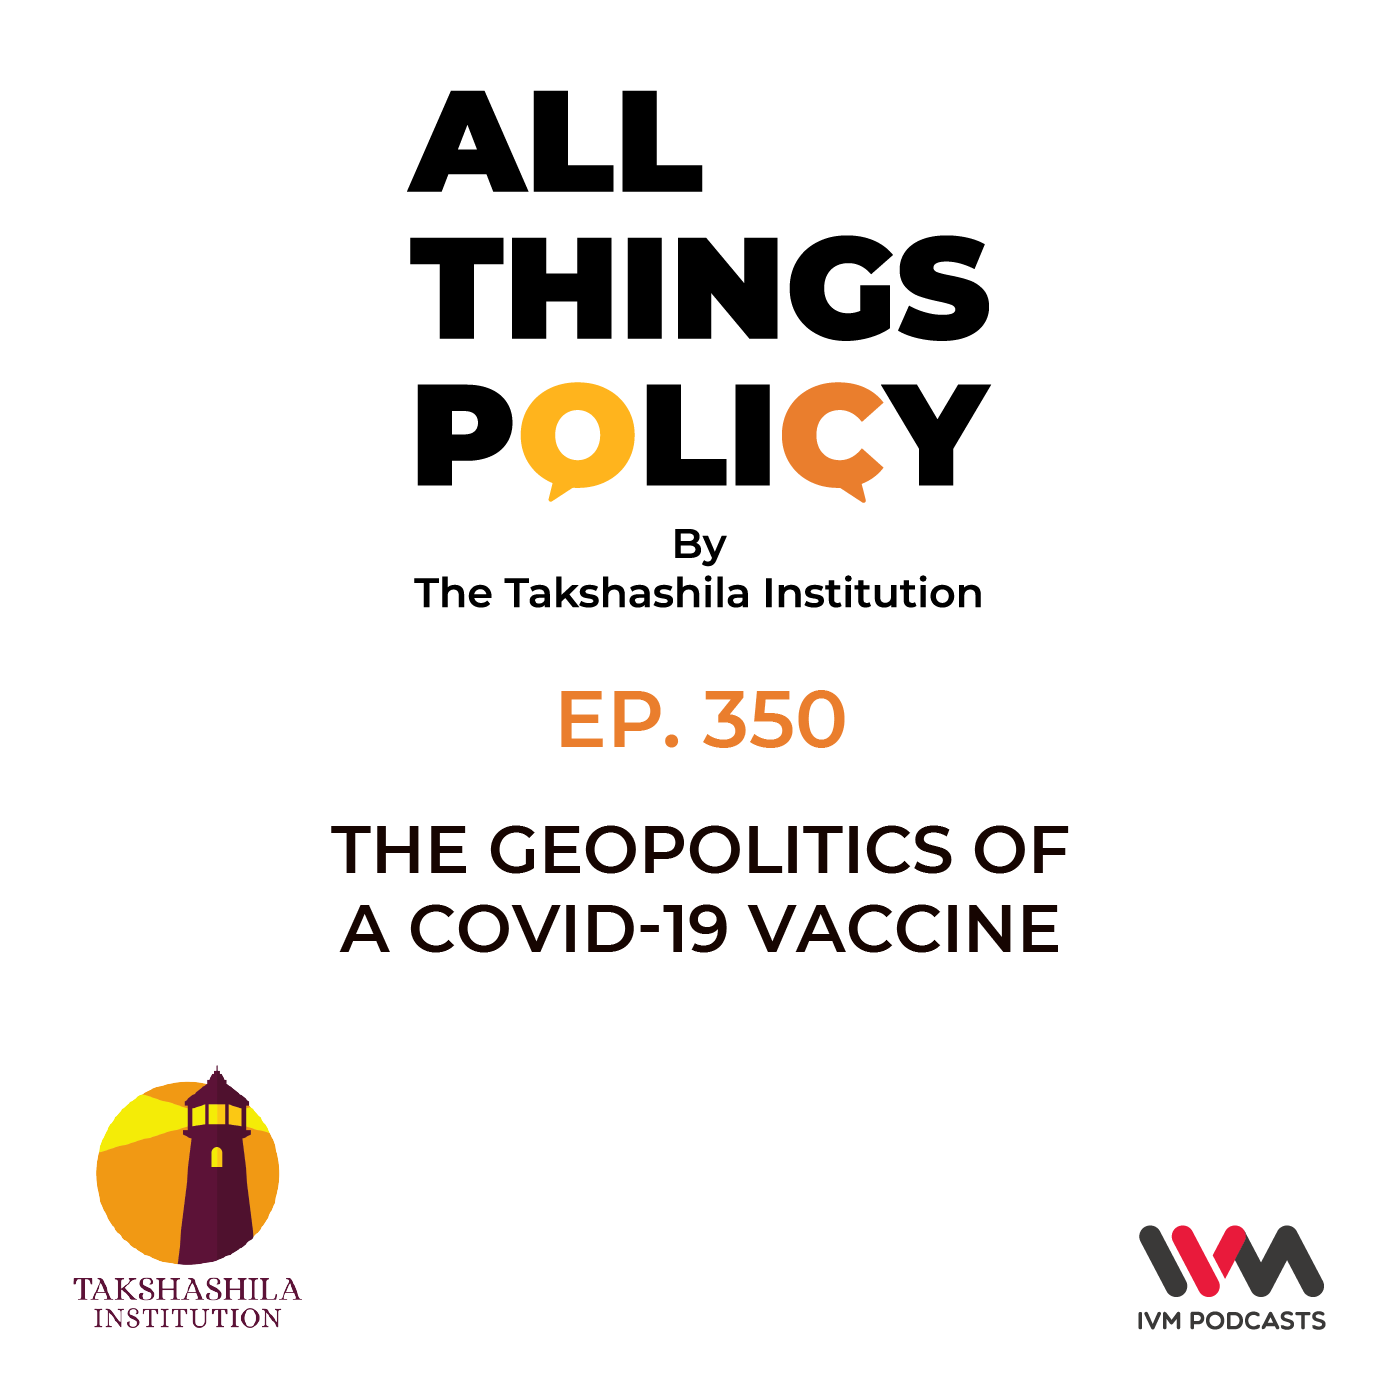 Ep. 350: The Geopolitics of a COVID-19 Vaccine